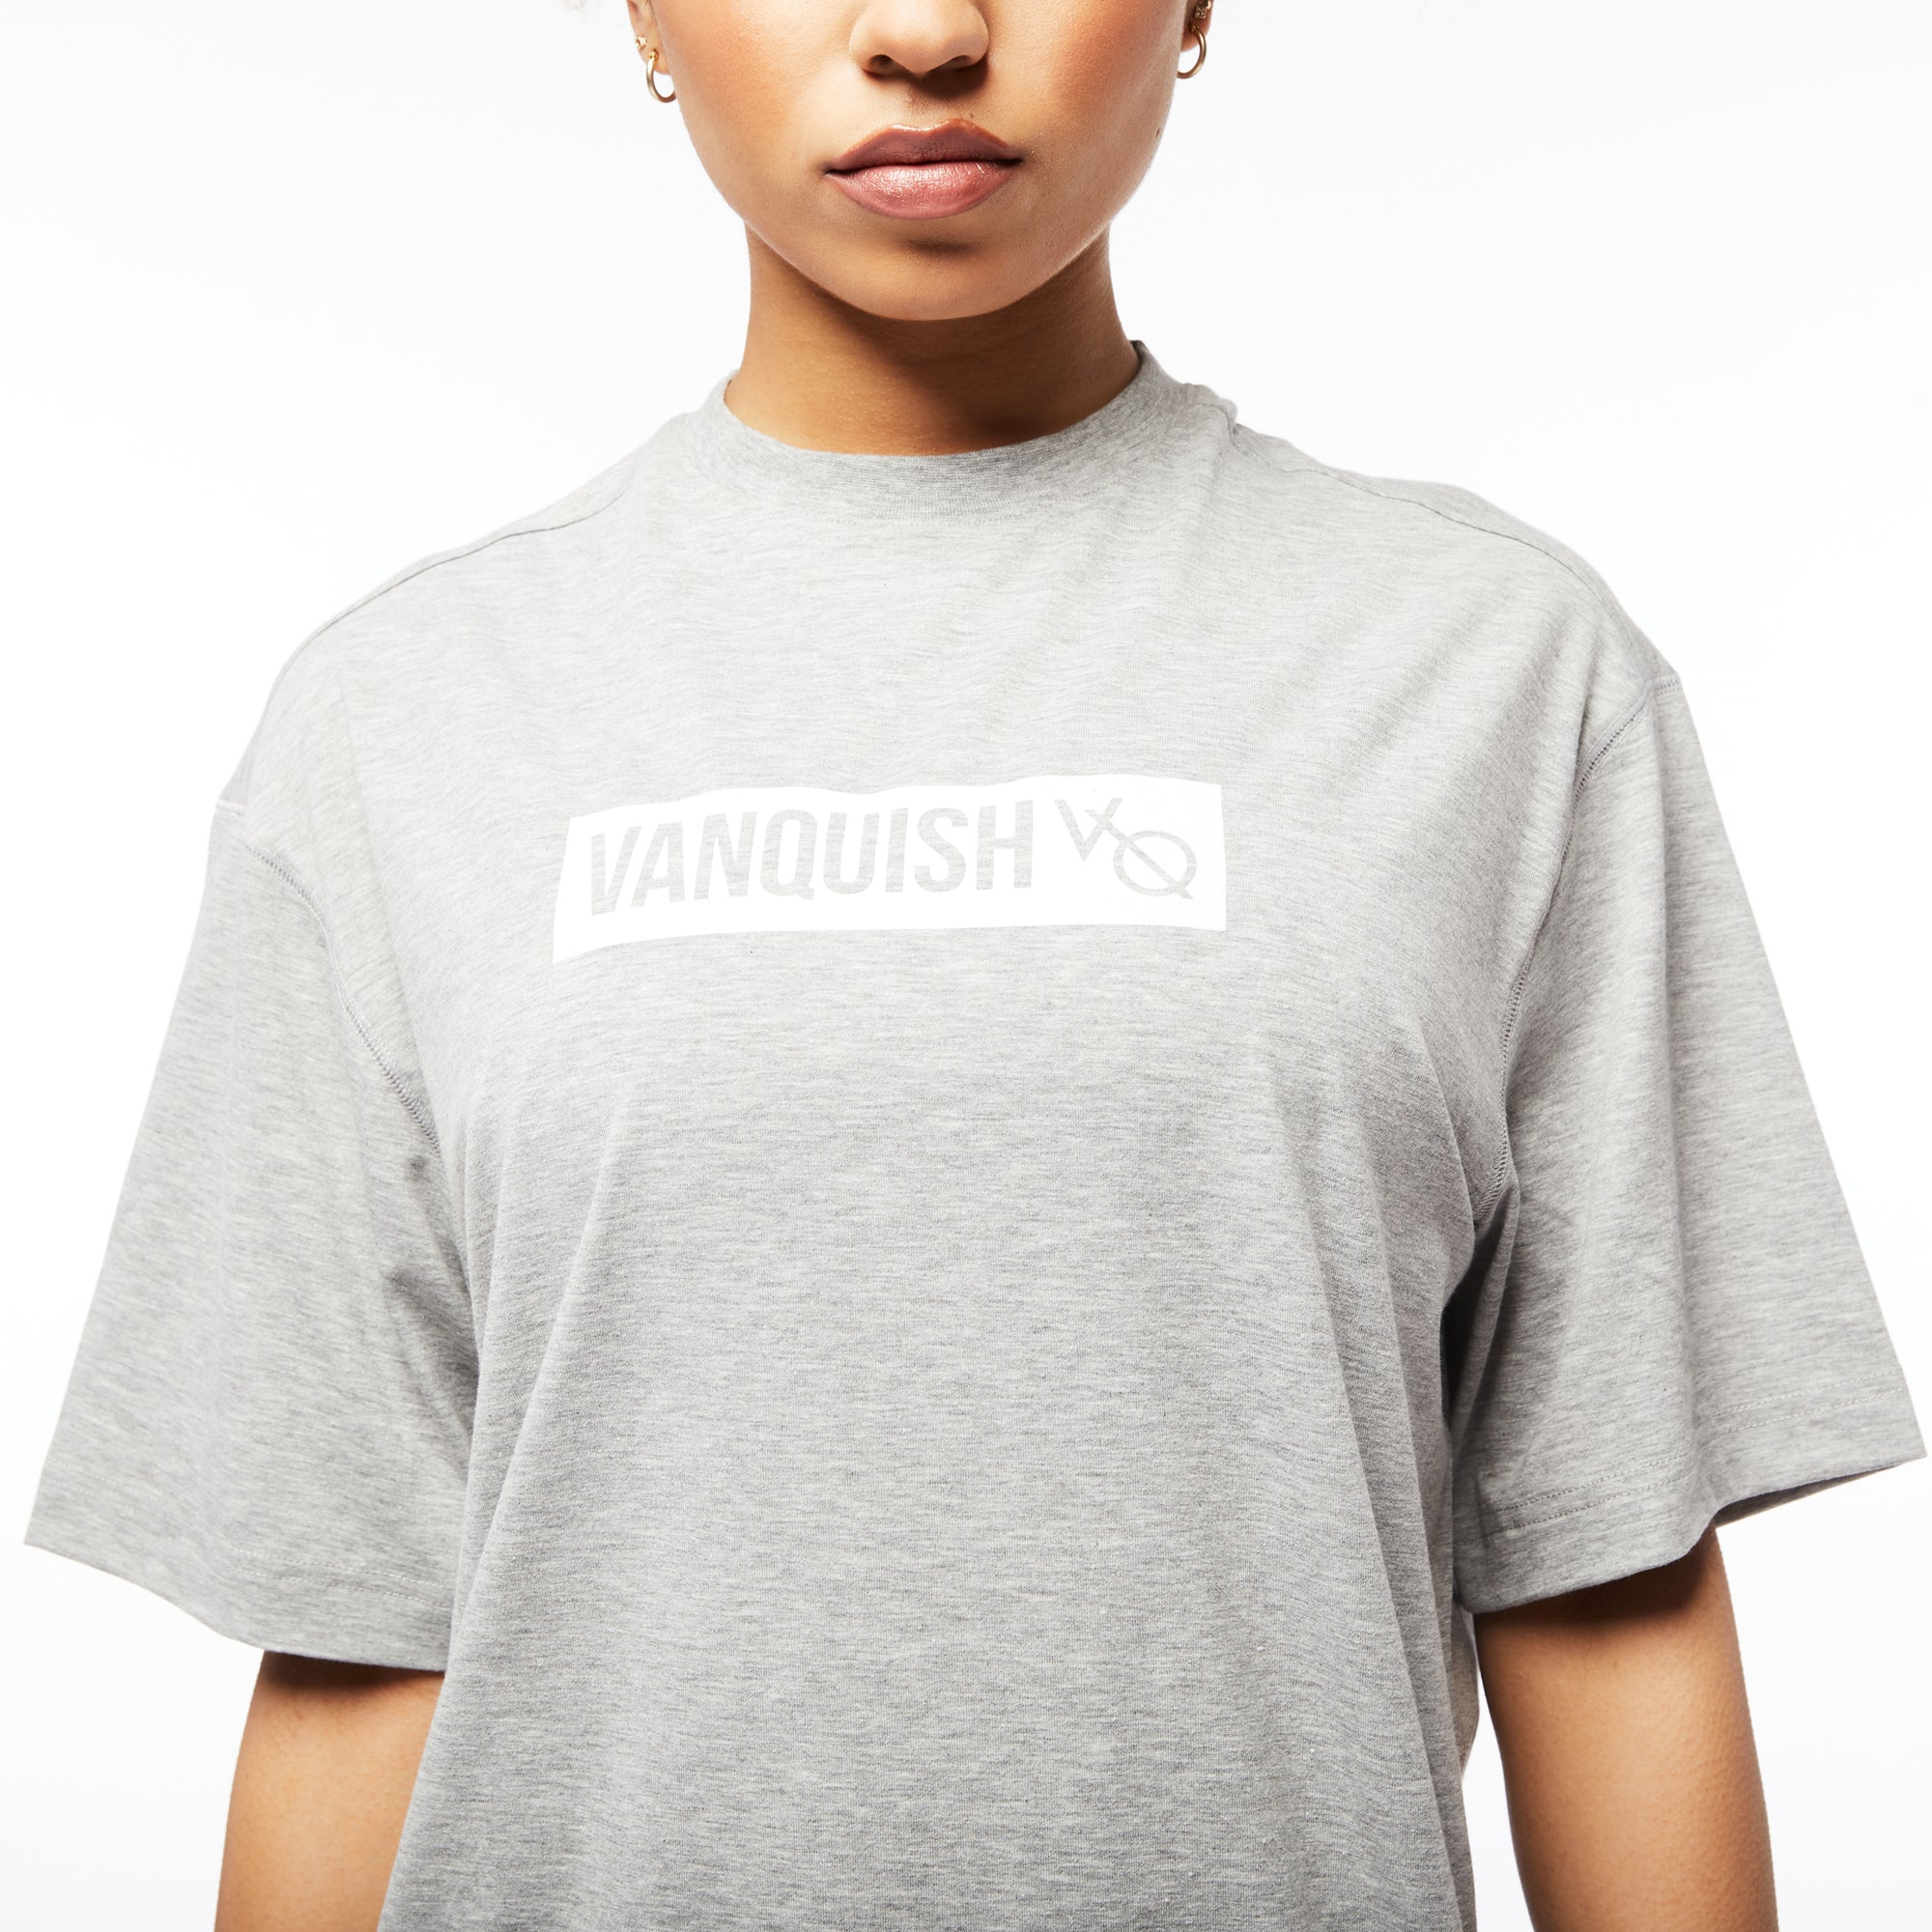 Vanquish Unisex Box Logo Ash Grey Oversized T Shirt